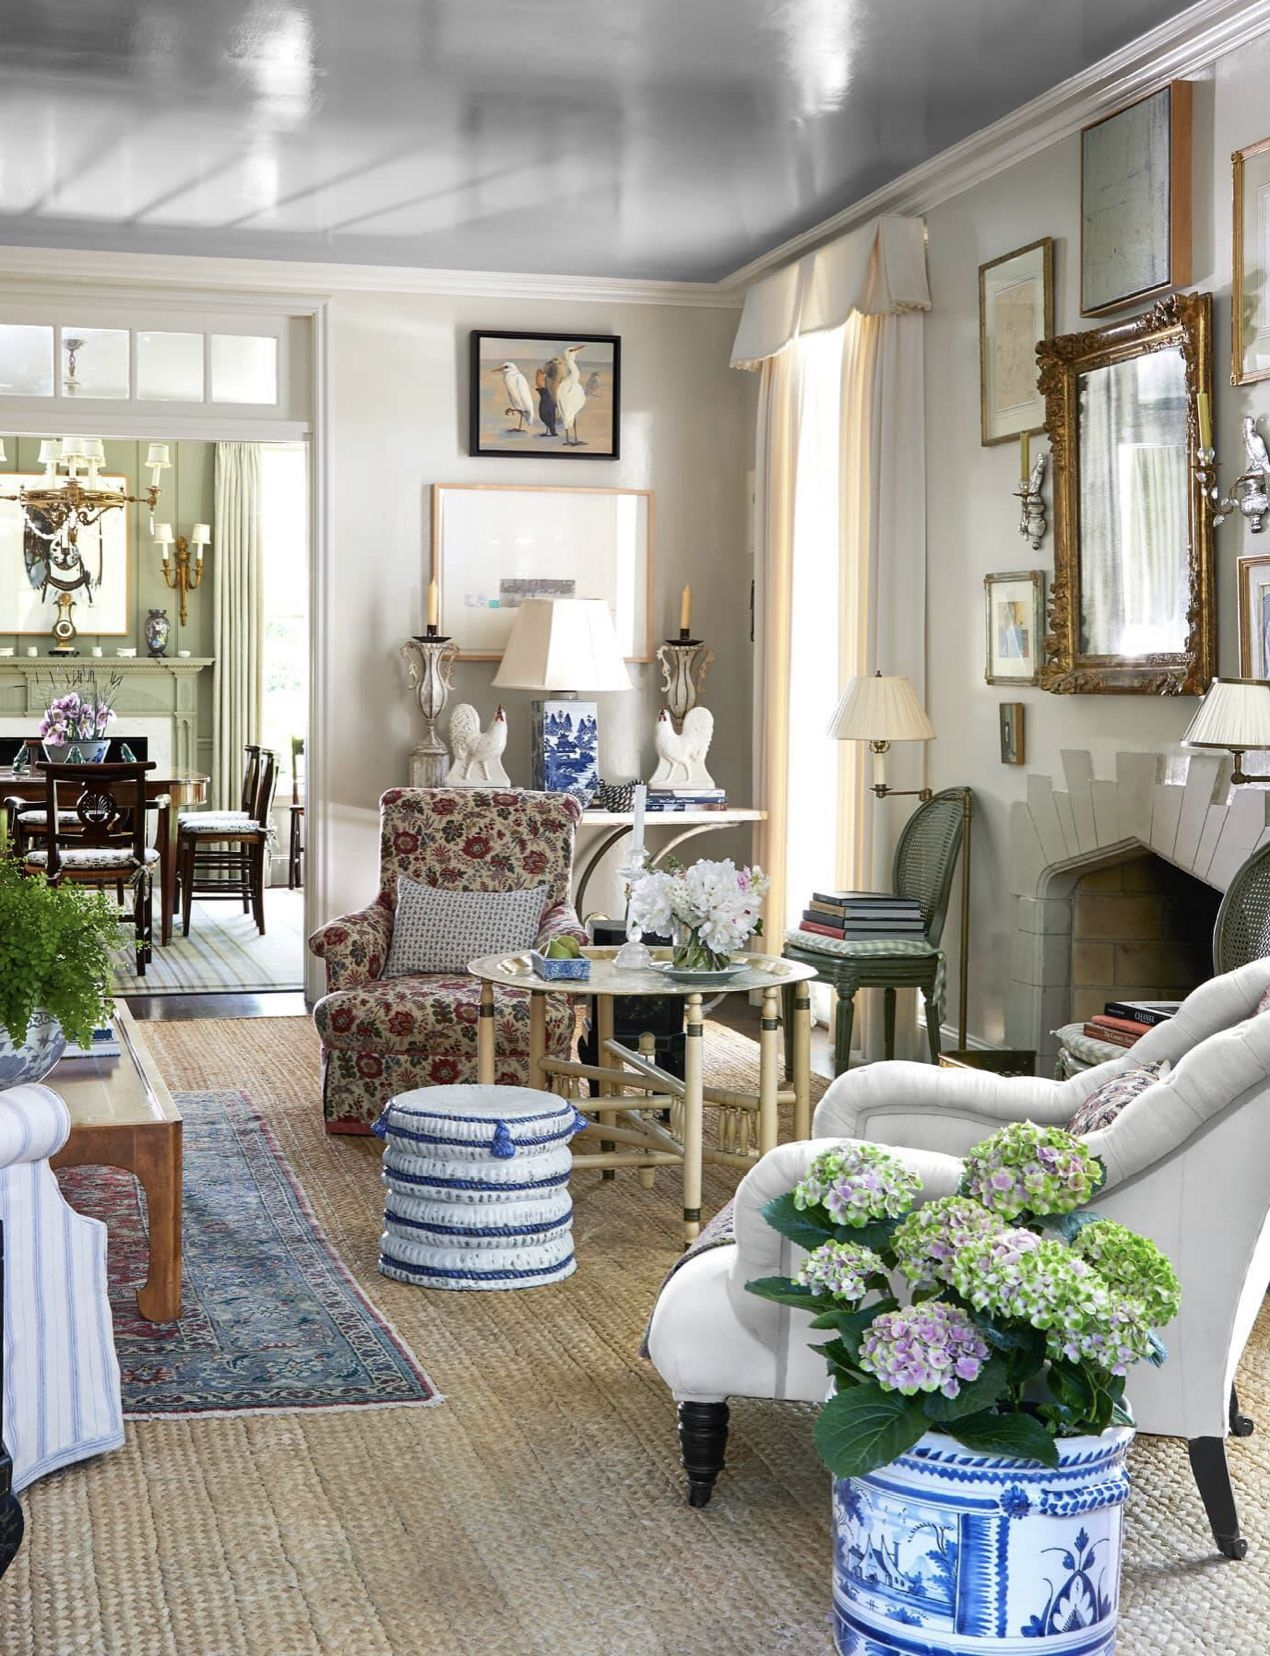 Magnificent Home Decor for Living Room Tables On Charming Pin by Carla Tenbrook On Decor On Home Decor for Living Room Tables